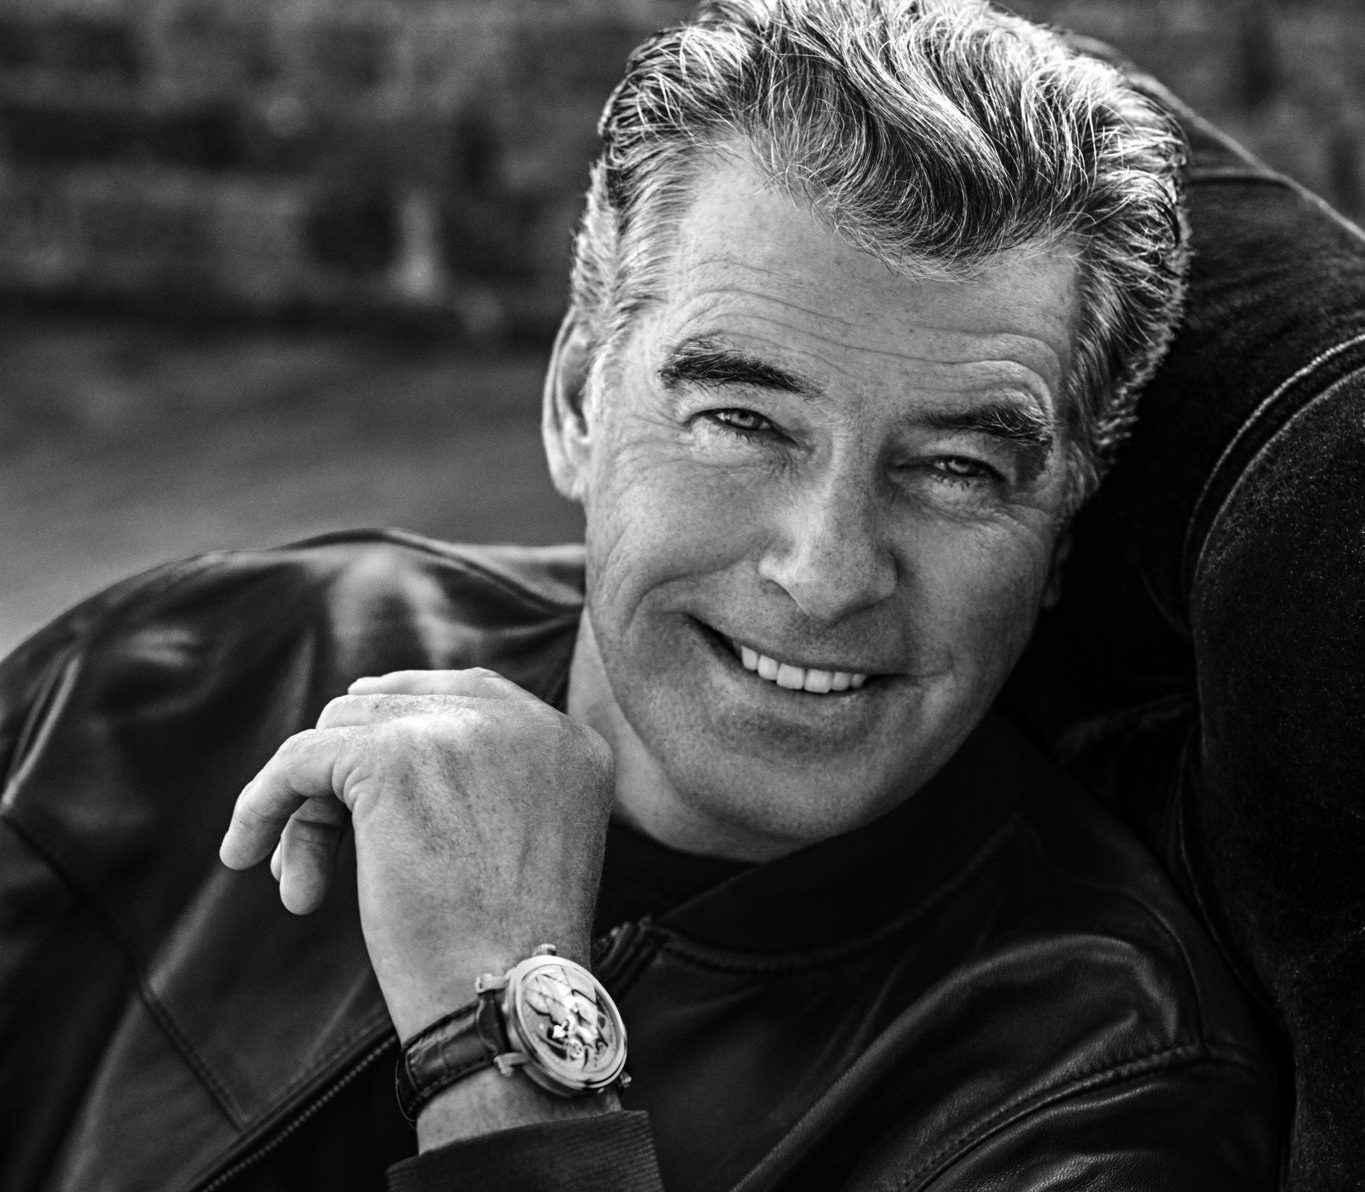 PIERCE_BROSNAN_BW_Sitting_01_HQ